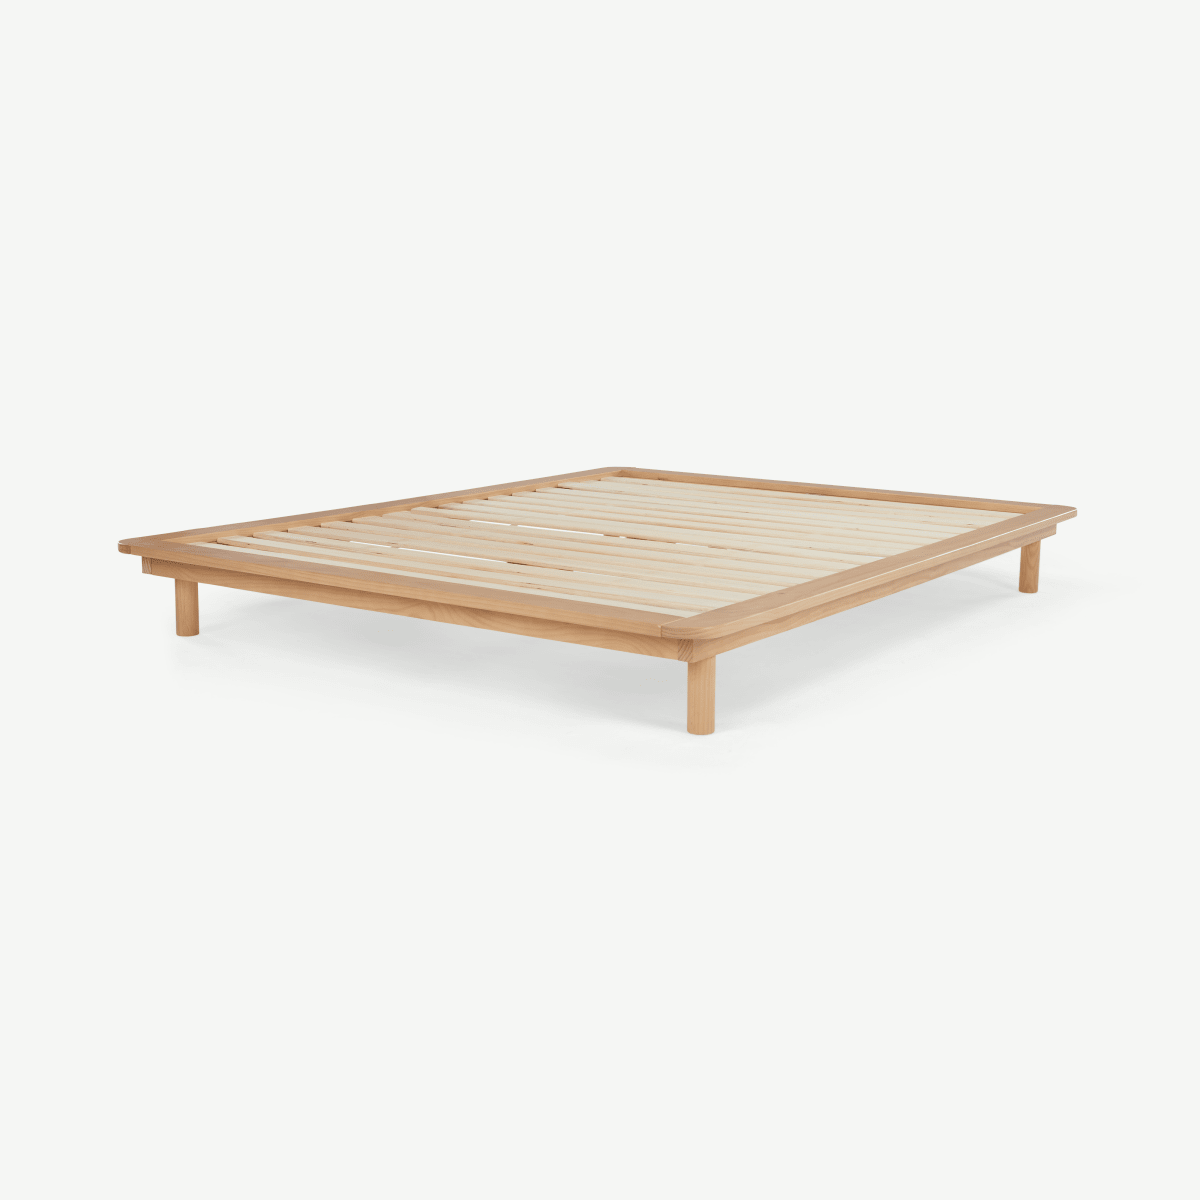 Kano Platform Double Bed, Pine